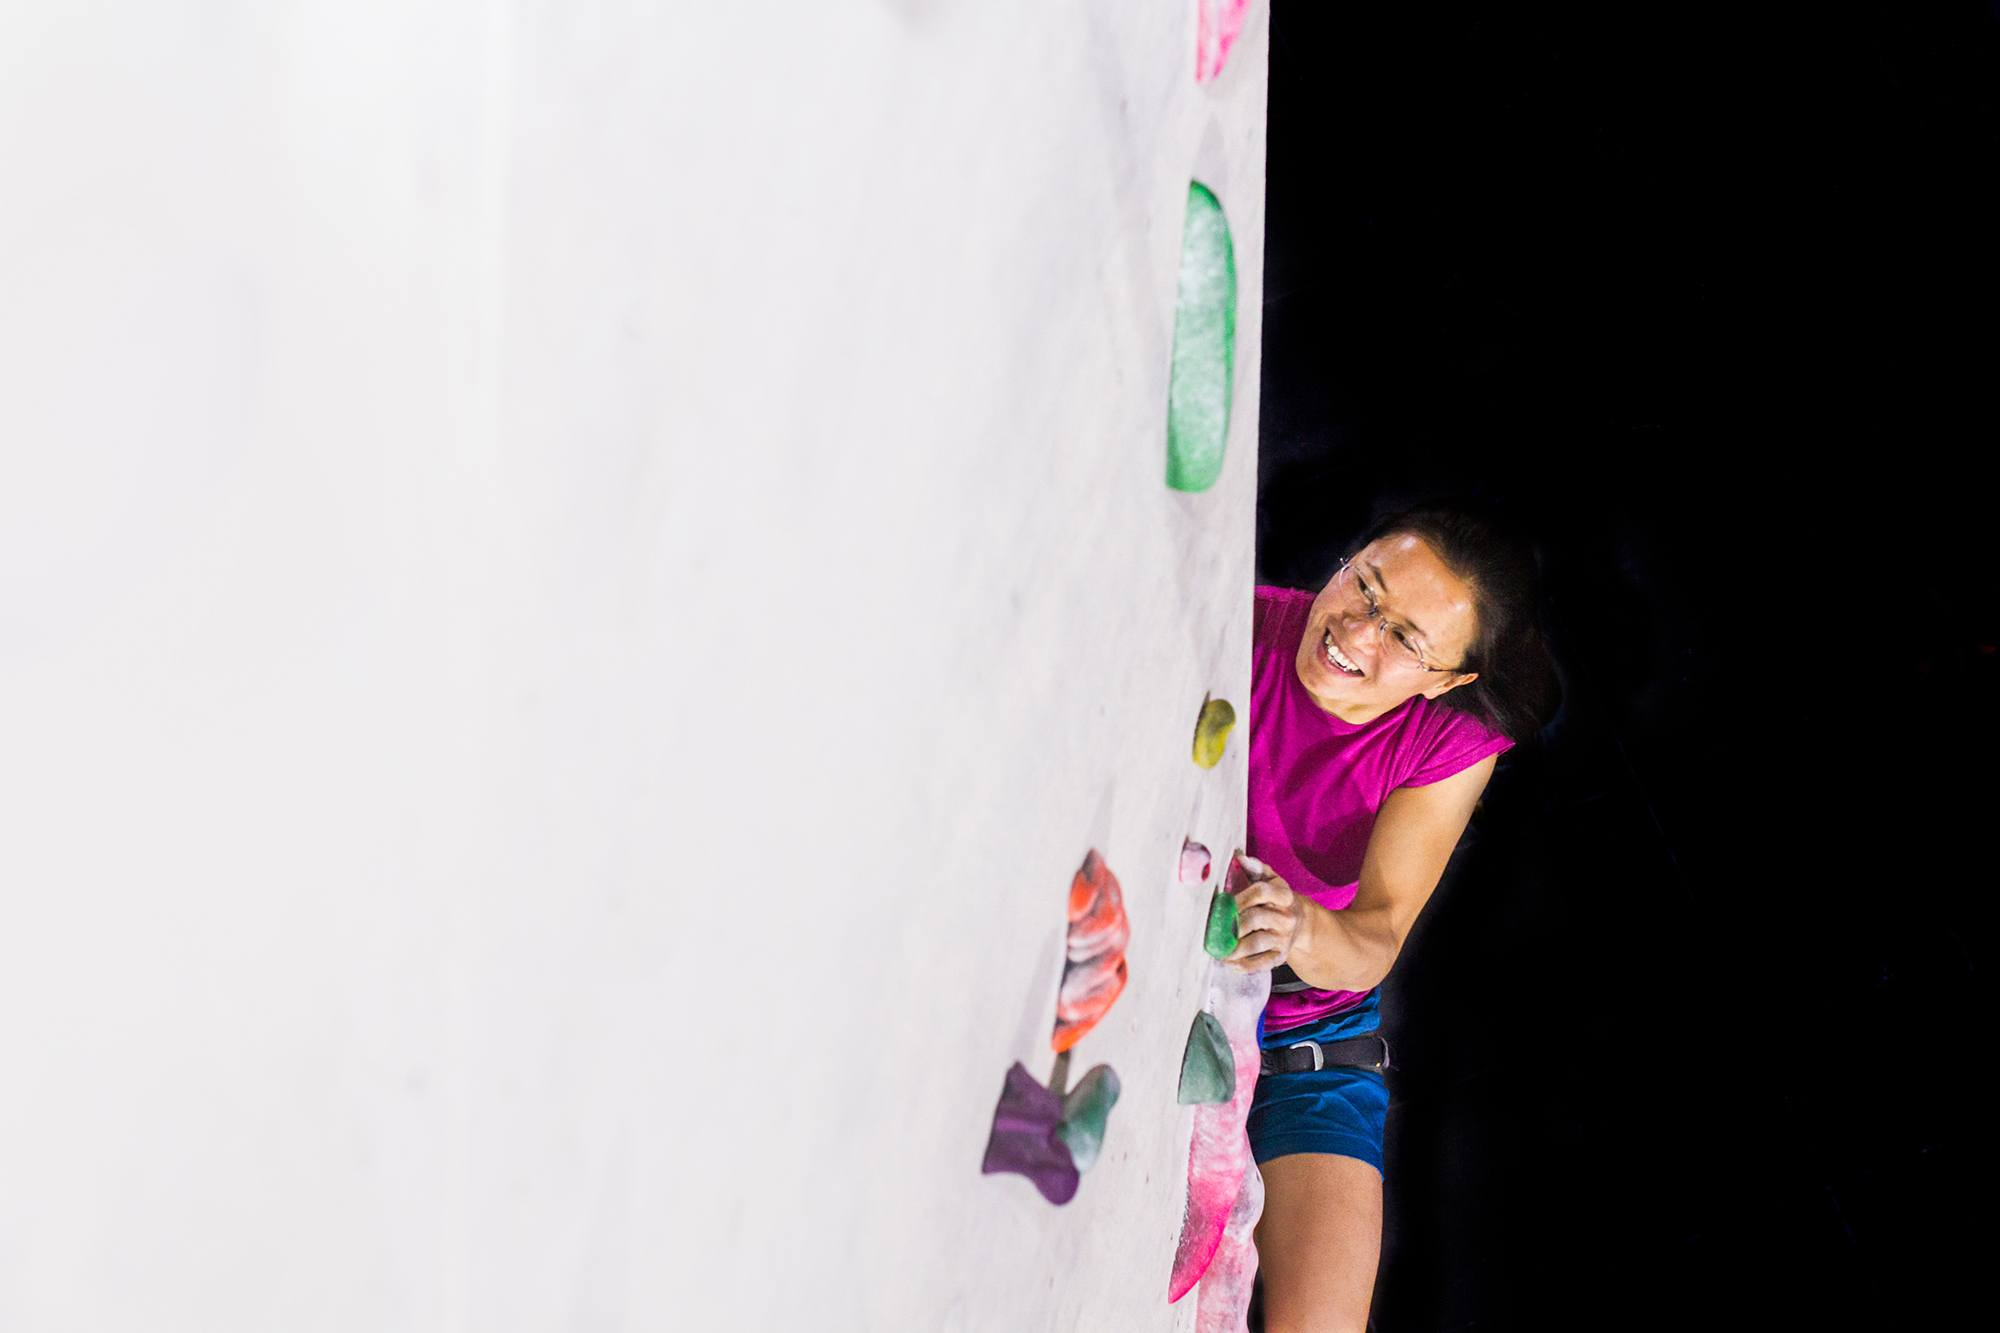 This Girl Can Climbing , photographed by Jessie Leong